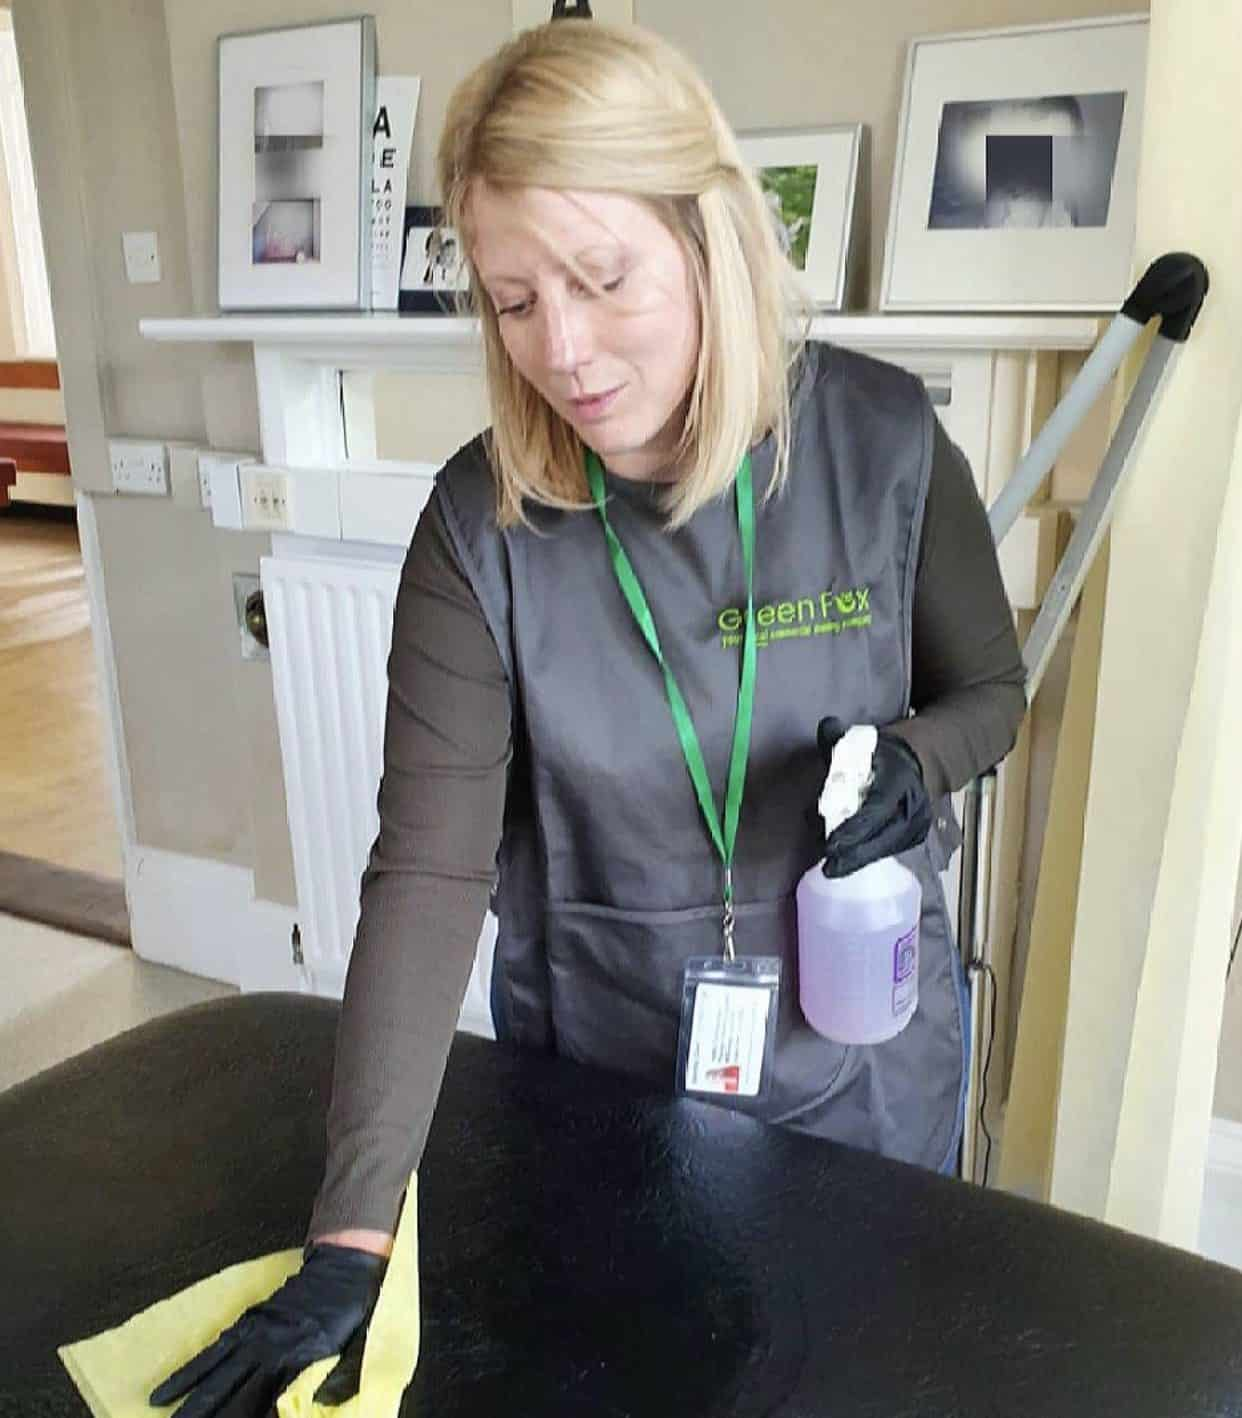 Doctors surgery cleaning